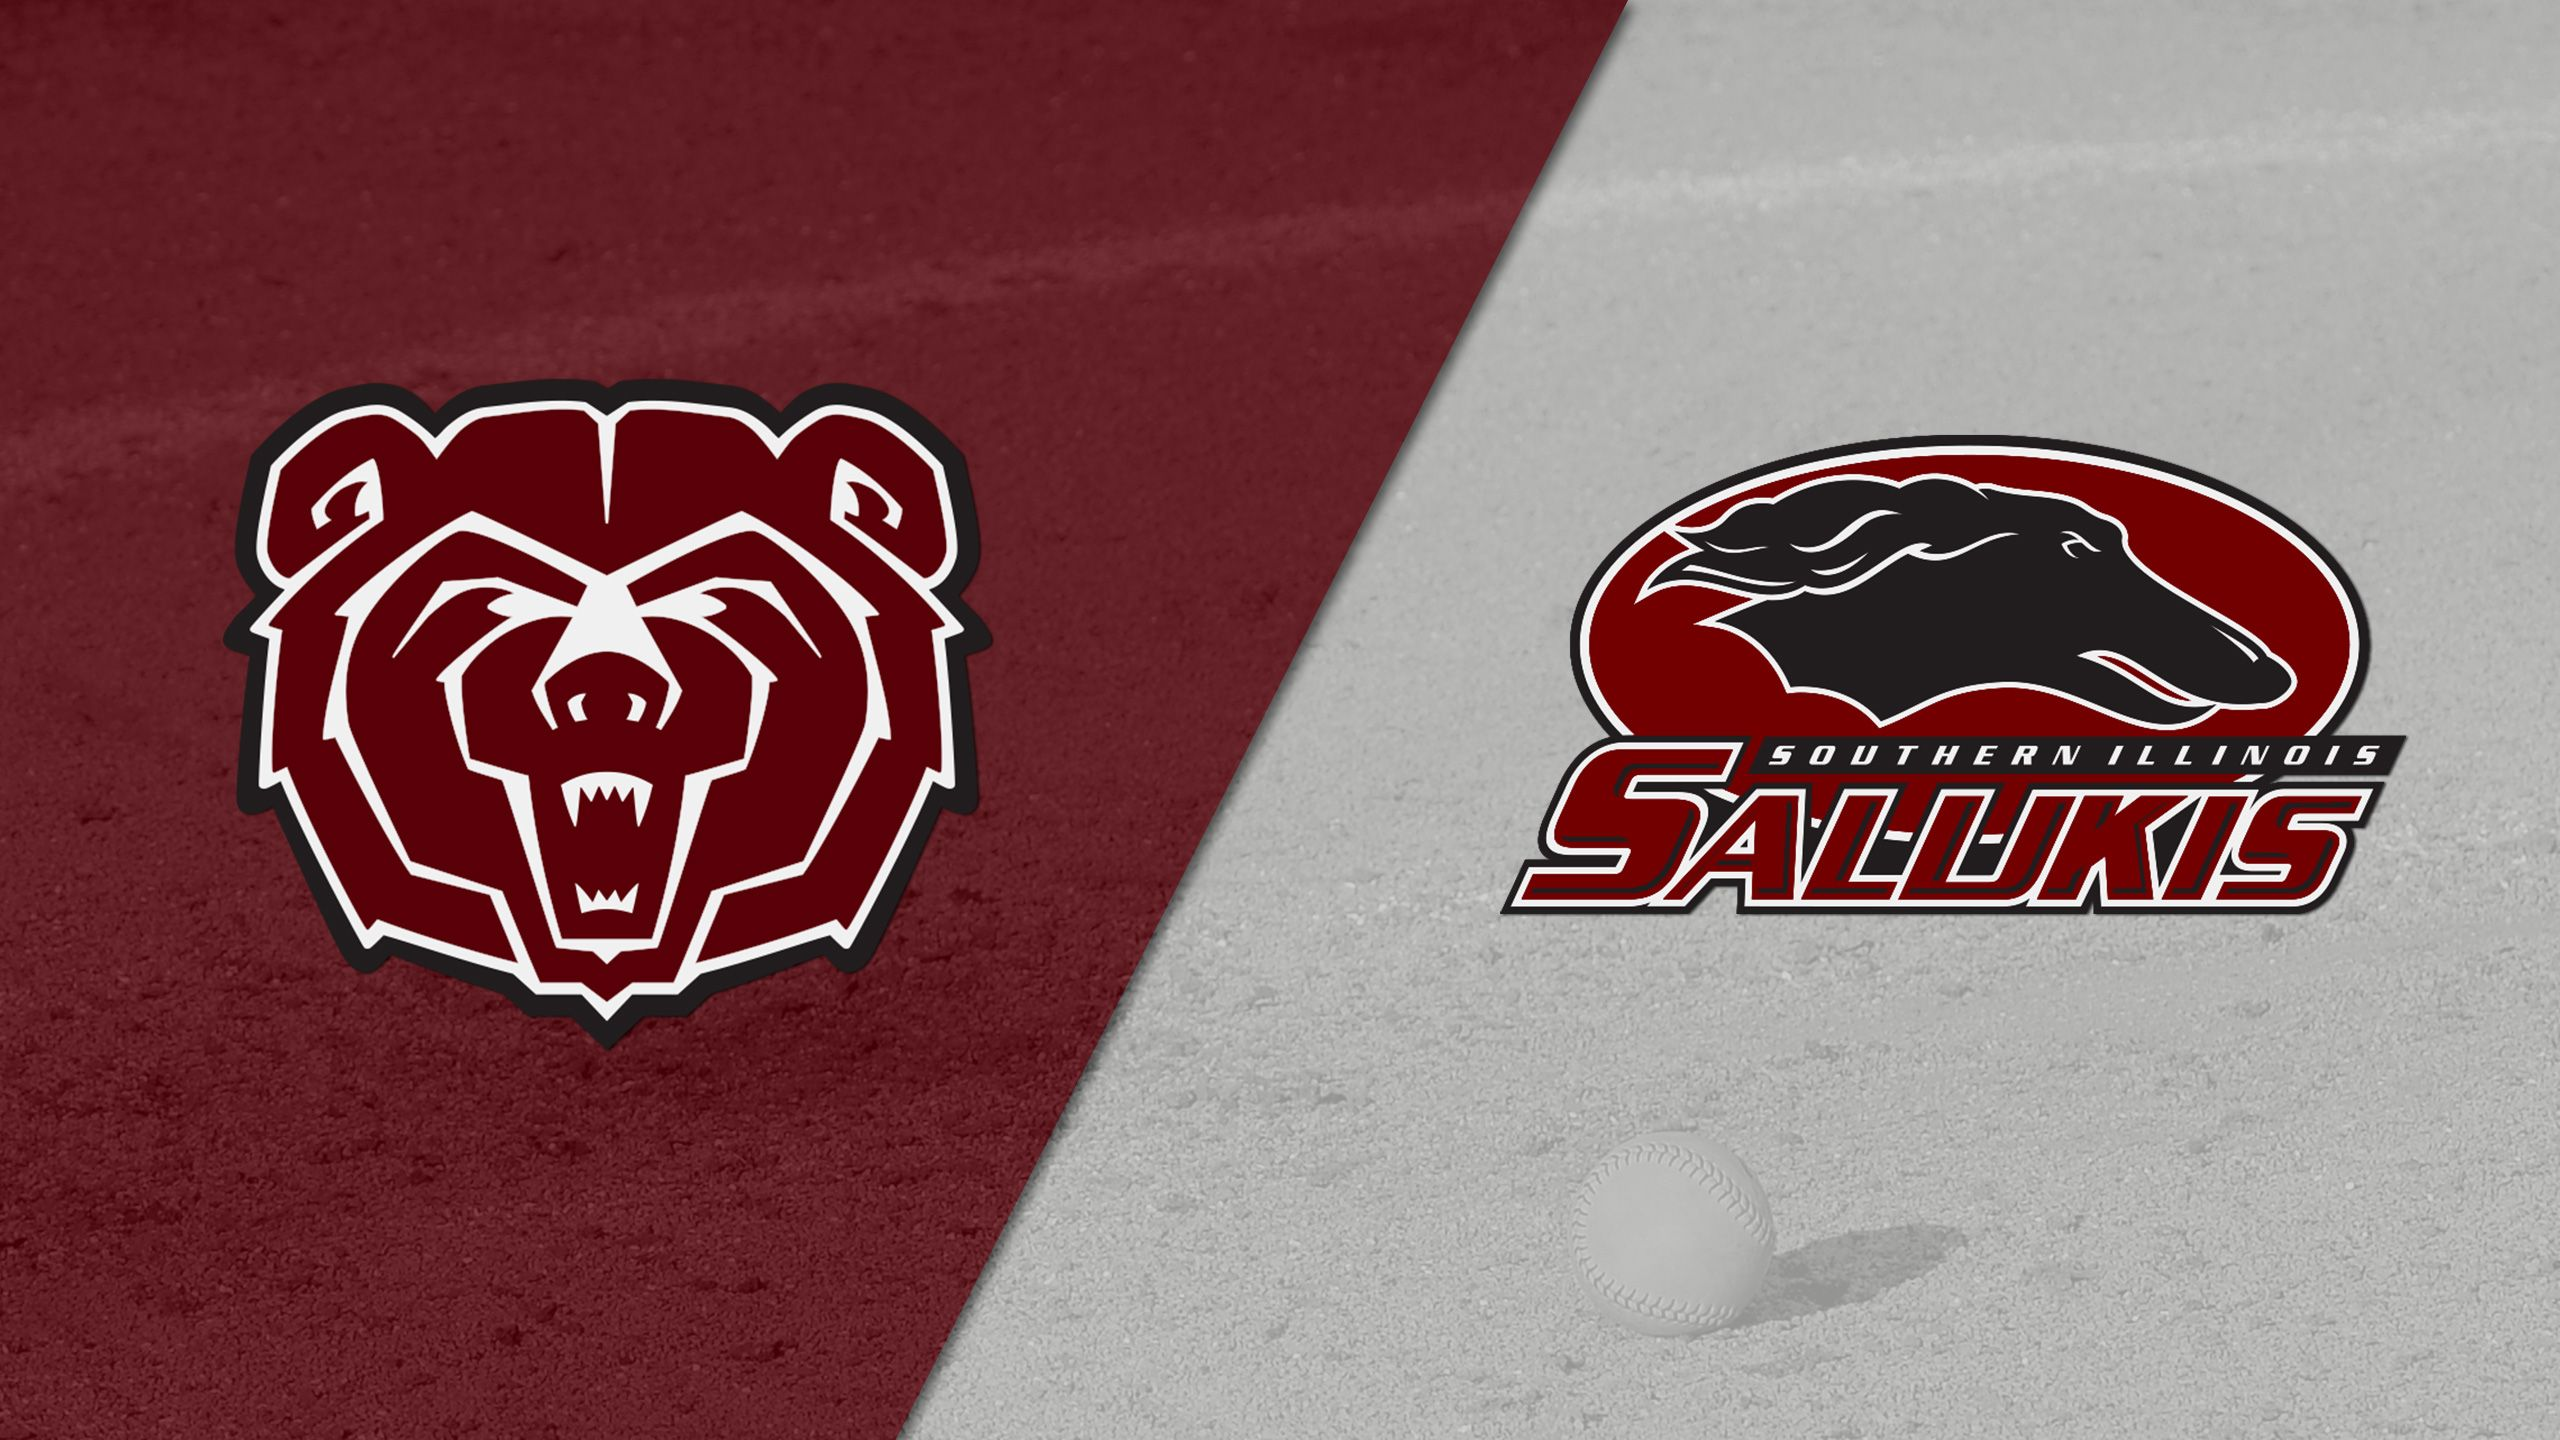 Missouri State vs. Southern Illinois (Softball)